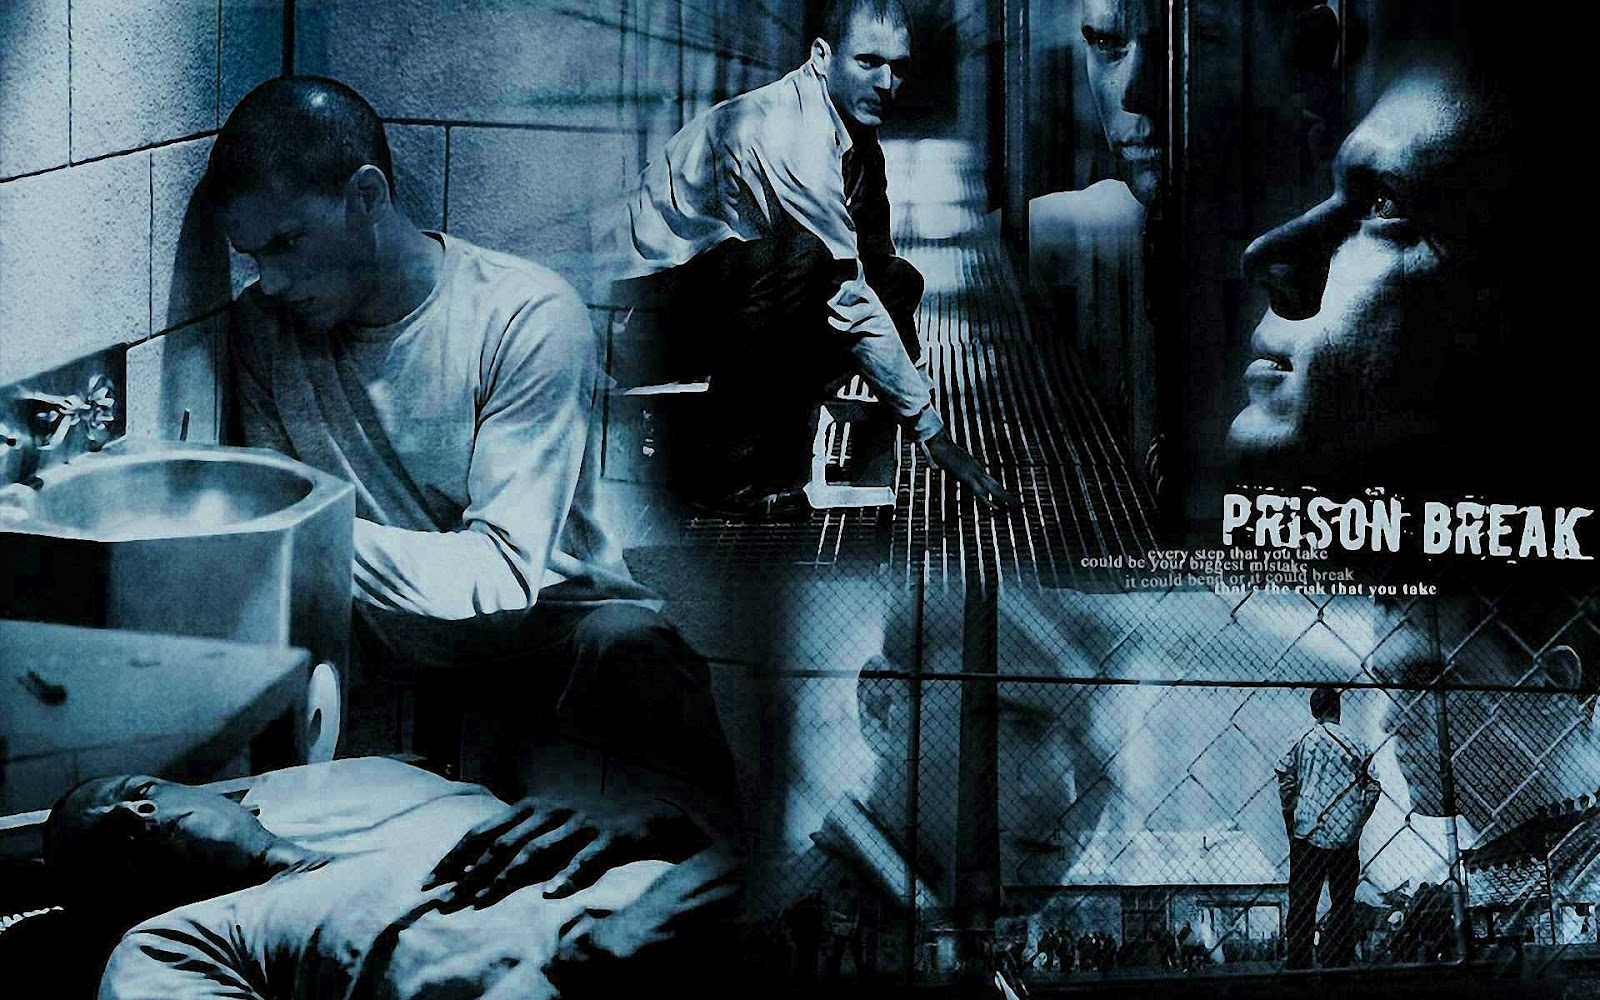 http://3.bp.blogspot.com/-pMfO51L-Zvc/T6ABw9K6QxI/AAAAAAAABhs/MIM-PS4CSsA/s1600/tv-series-prison-break-wallpapers-hd-prison-break-wallpaper-backgrounds-24.jpg